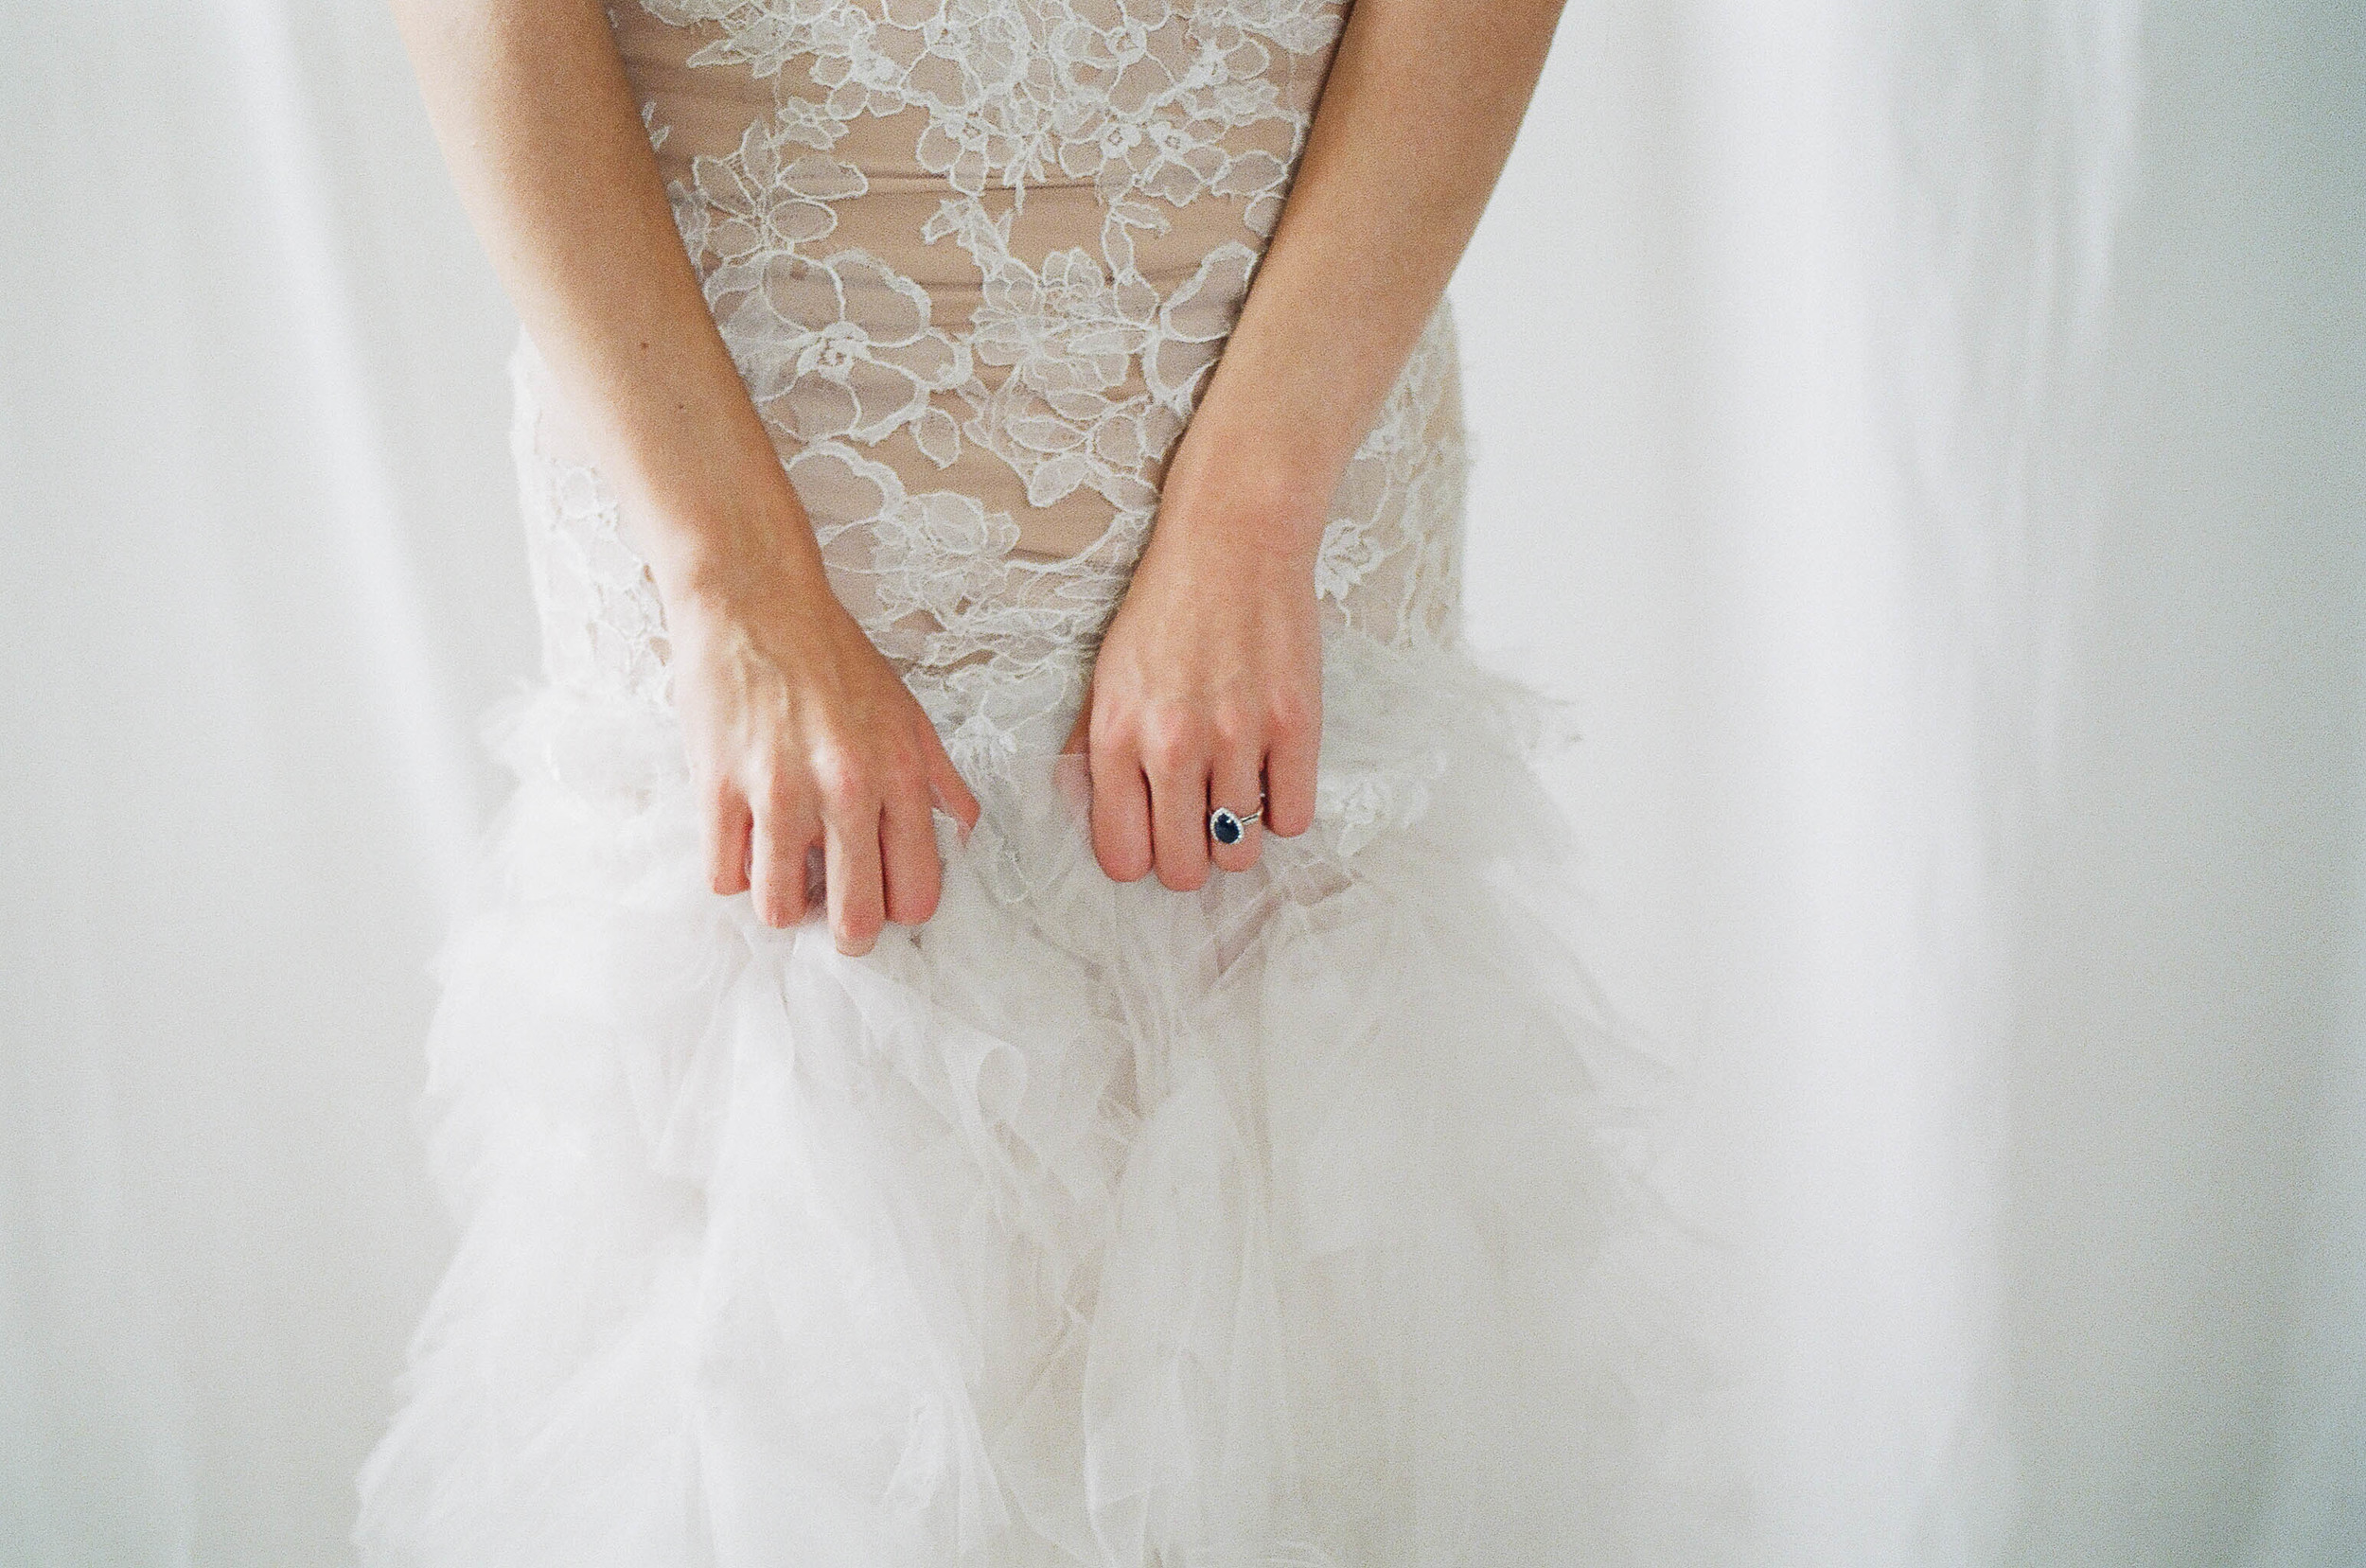 wedding ring and lace wedding dress